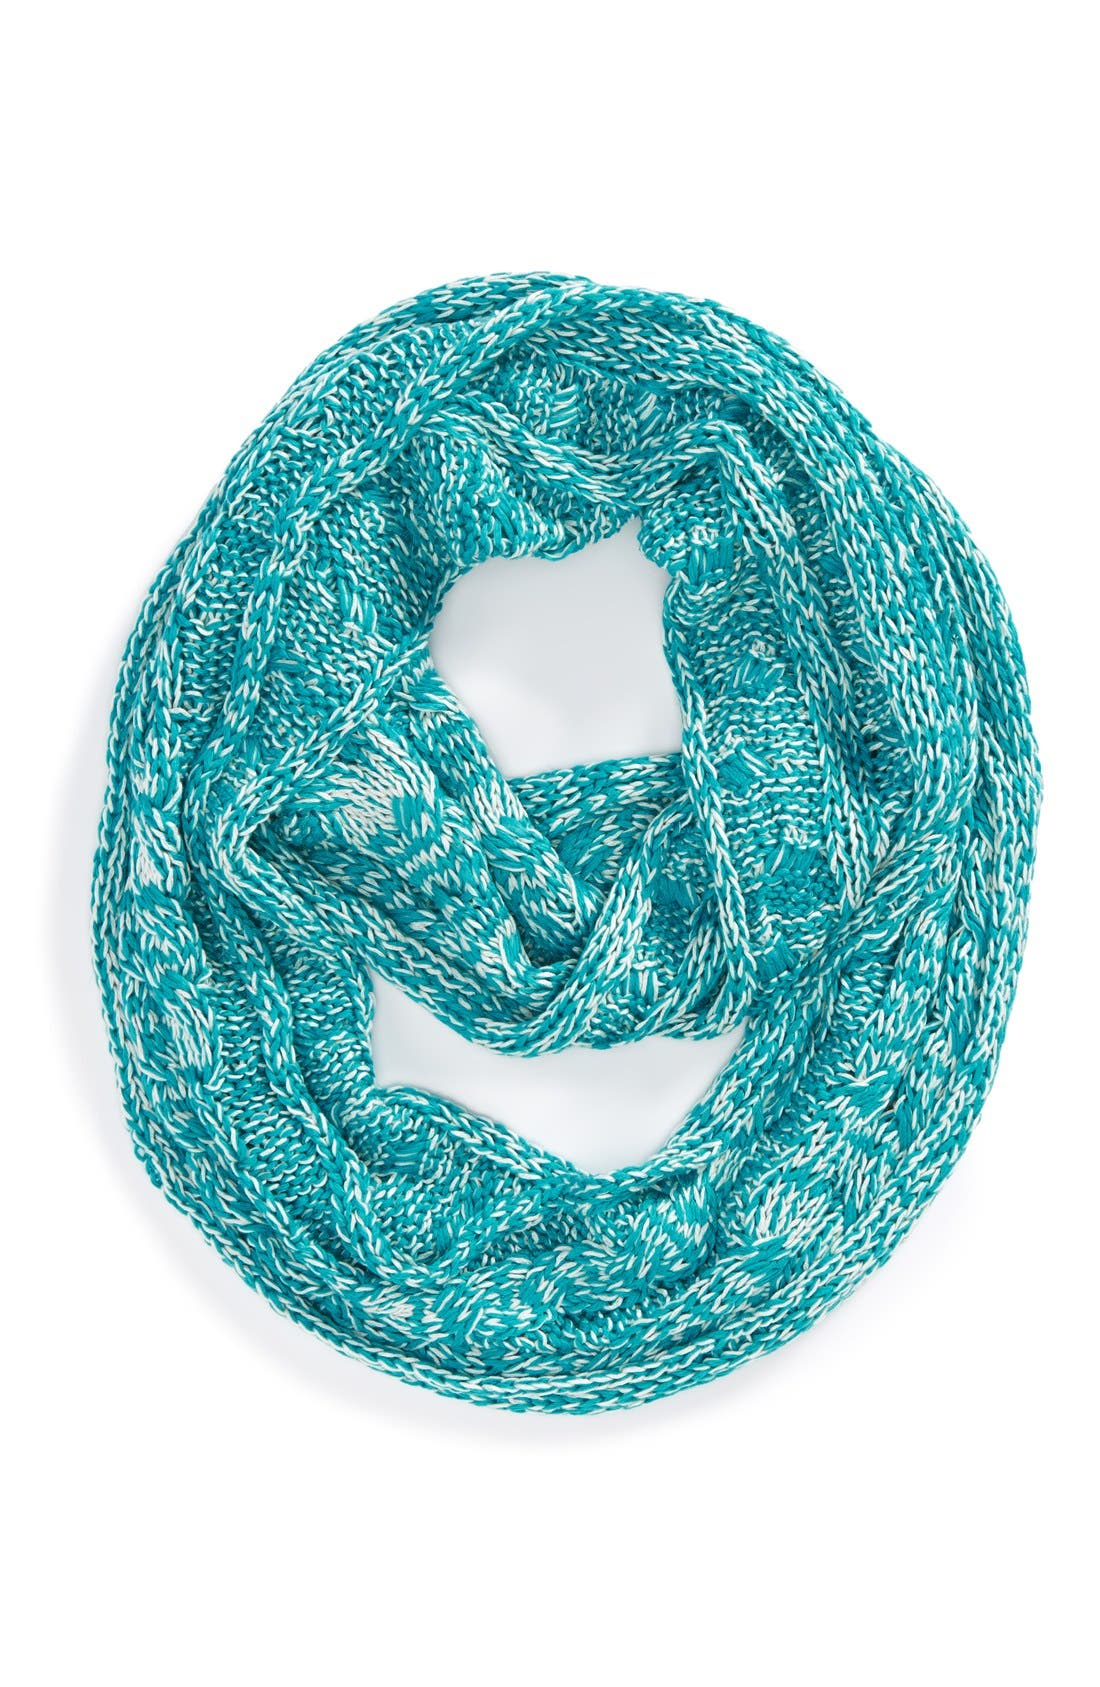 Neon Cable Knit Scarf,                             Main thumbnail 1, color,                             430